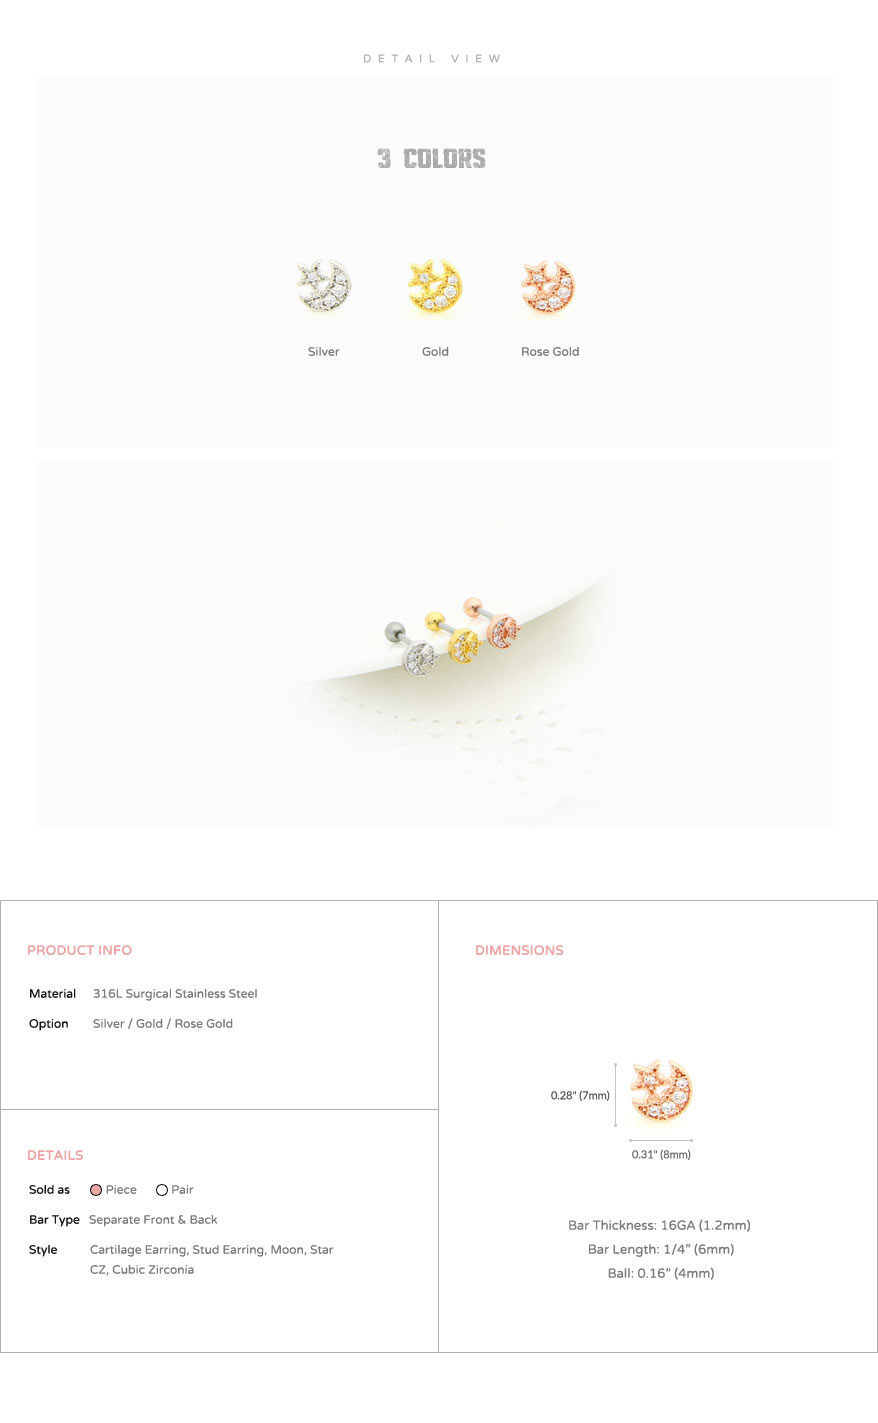 ear_studs_piercing_cartilage_earrings_16g_316l_surgical_stainless_steel_korean_style_jewelry_barbell_rose_gold_moon_star_helix_conch_labret_tragus_5